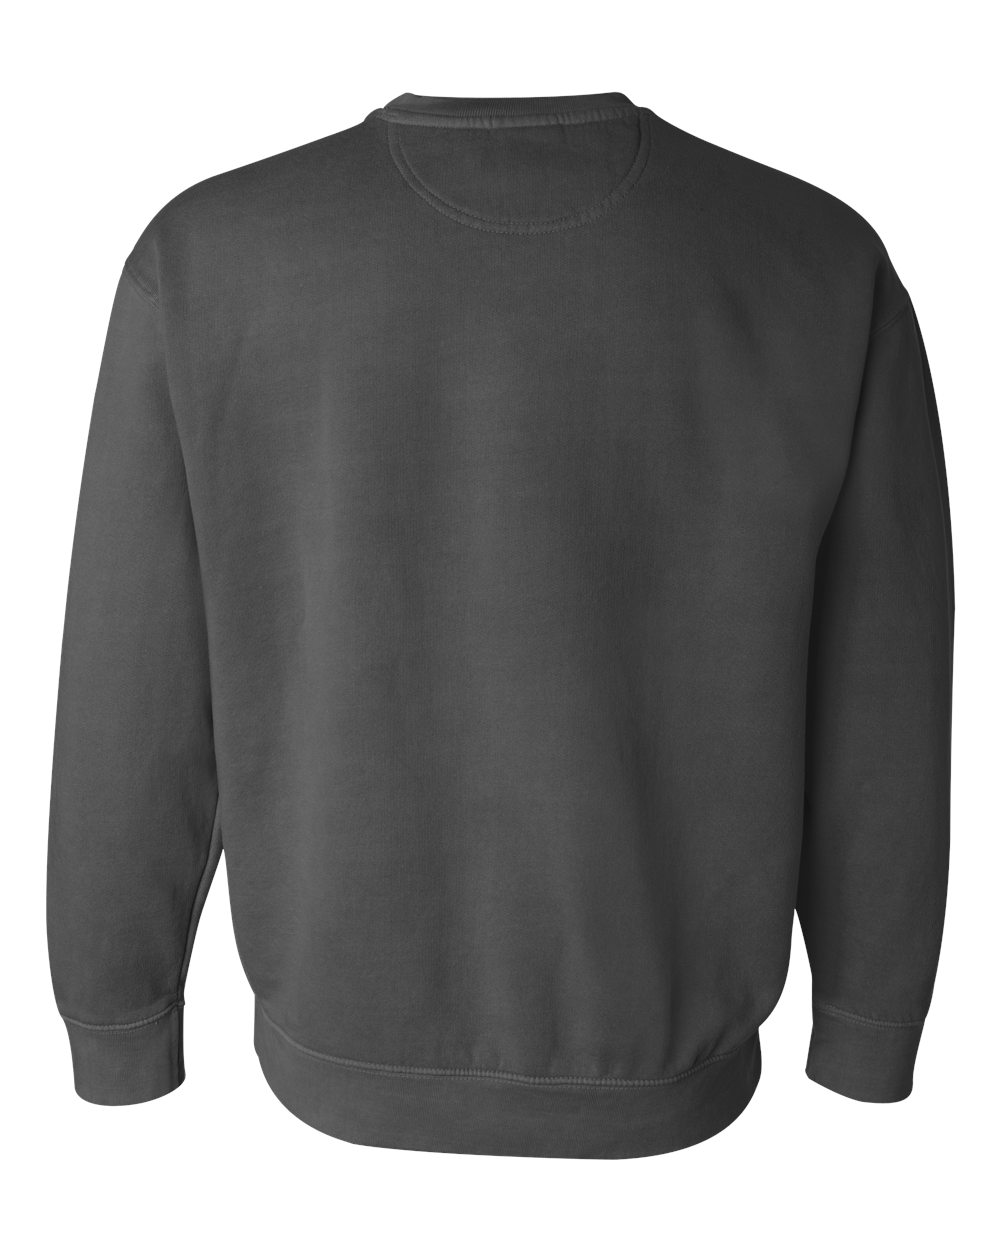 Comfort-Colors-Mens-Garment-Dyed-Ringspun-Crewneck-Sweatshirt-1566-up-to-3XL miniature 49